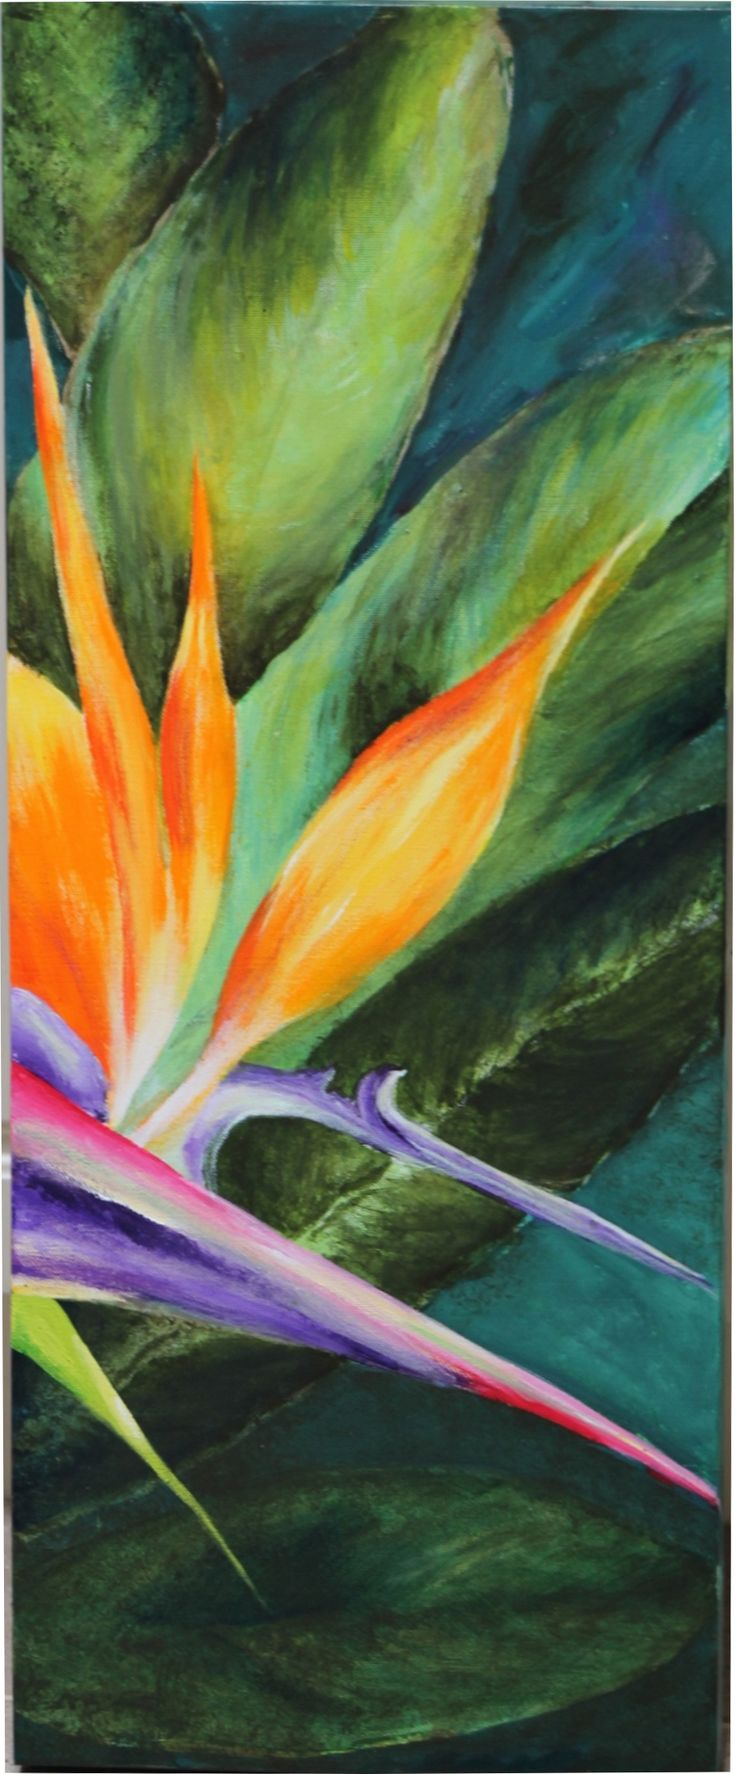 """ART PRINT ON CANVAS OR ART PAPER From Artist, Jill Harris, to you. Inspired by the amazing colorful """"Bird of Paradise"""" flowers - I painted this picture especially to brighten up my newly renovated guests room. It's all about the colors!"""